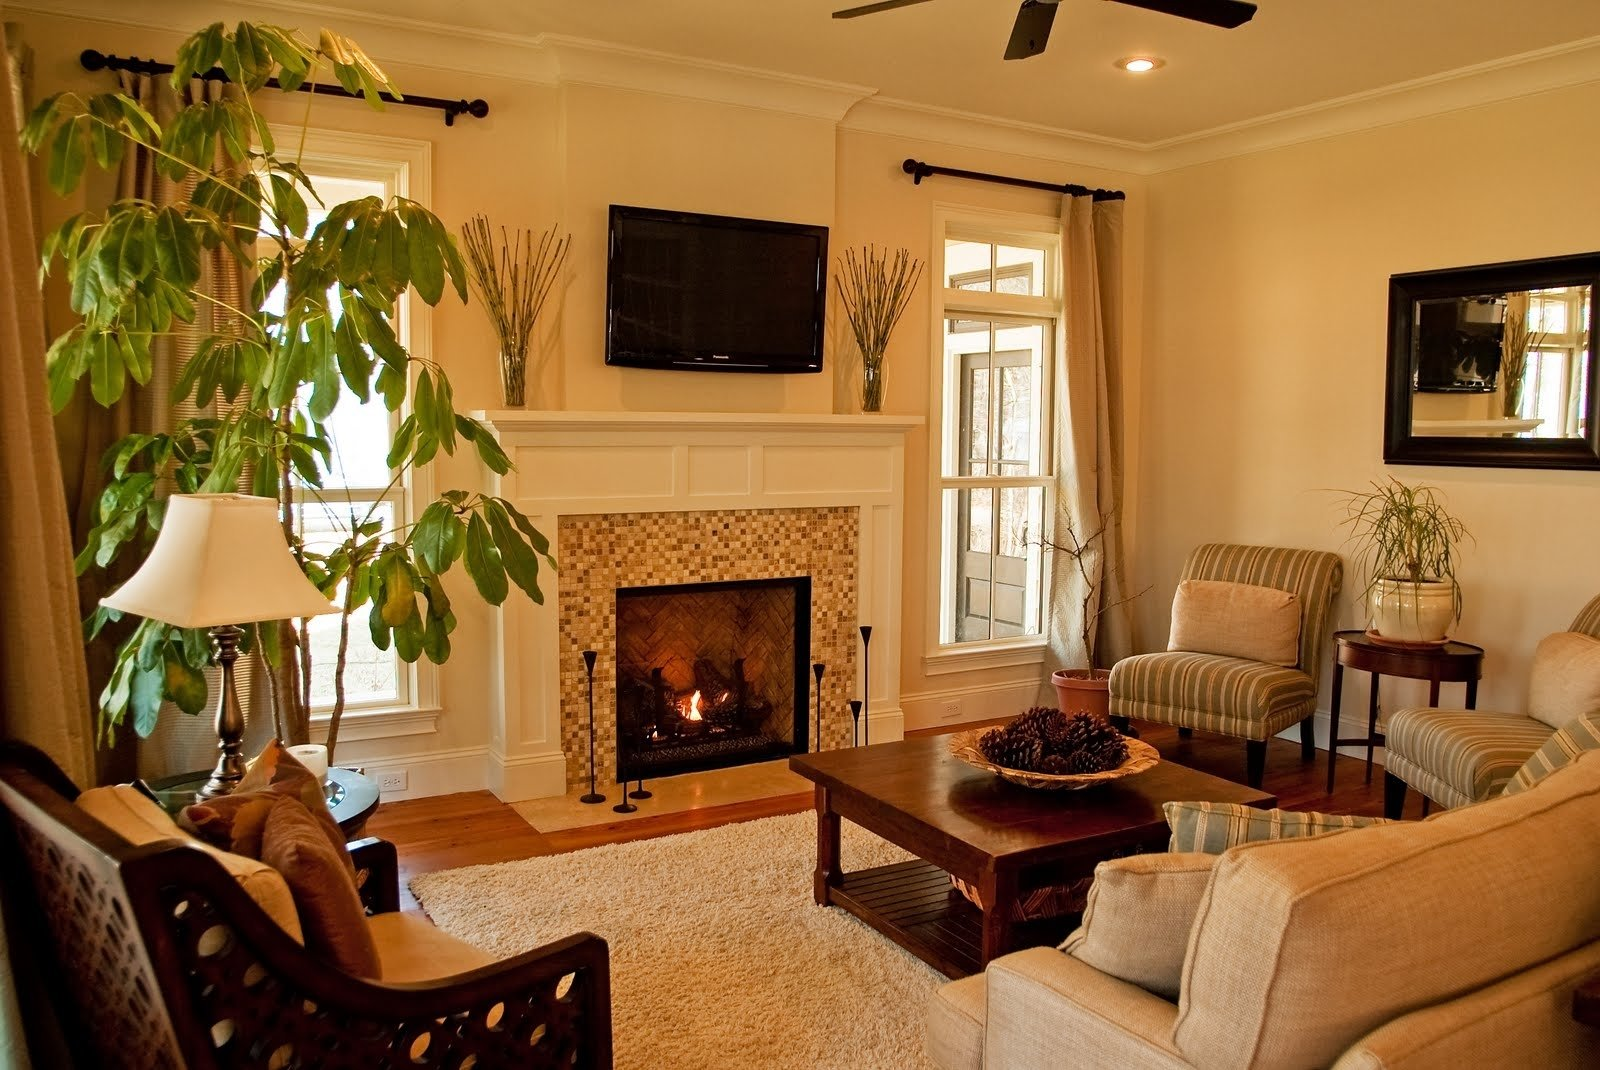 10 Lovely Living Room With Fireplace Ideas the best corner fireplace ideas you can find out there duckness 2020